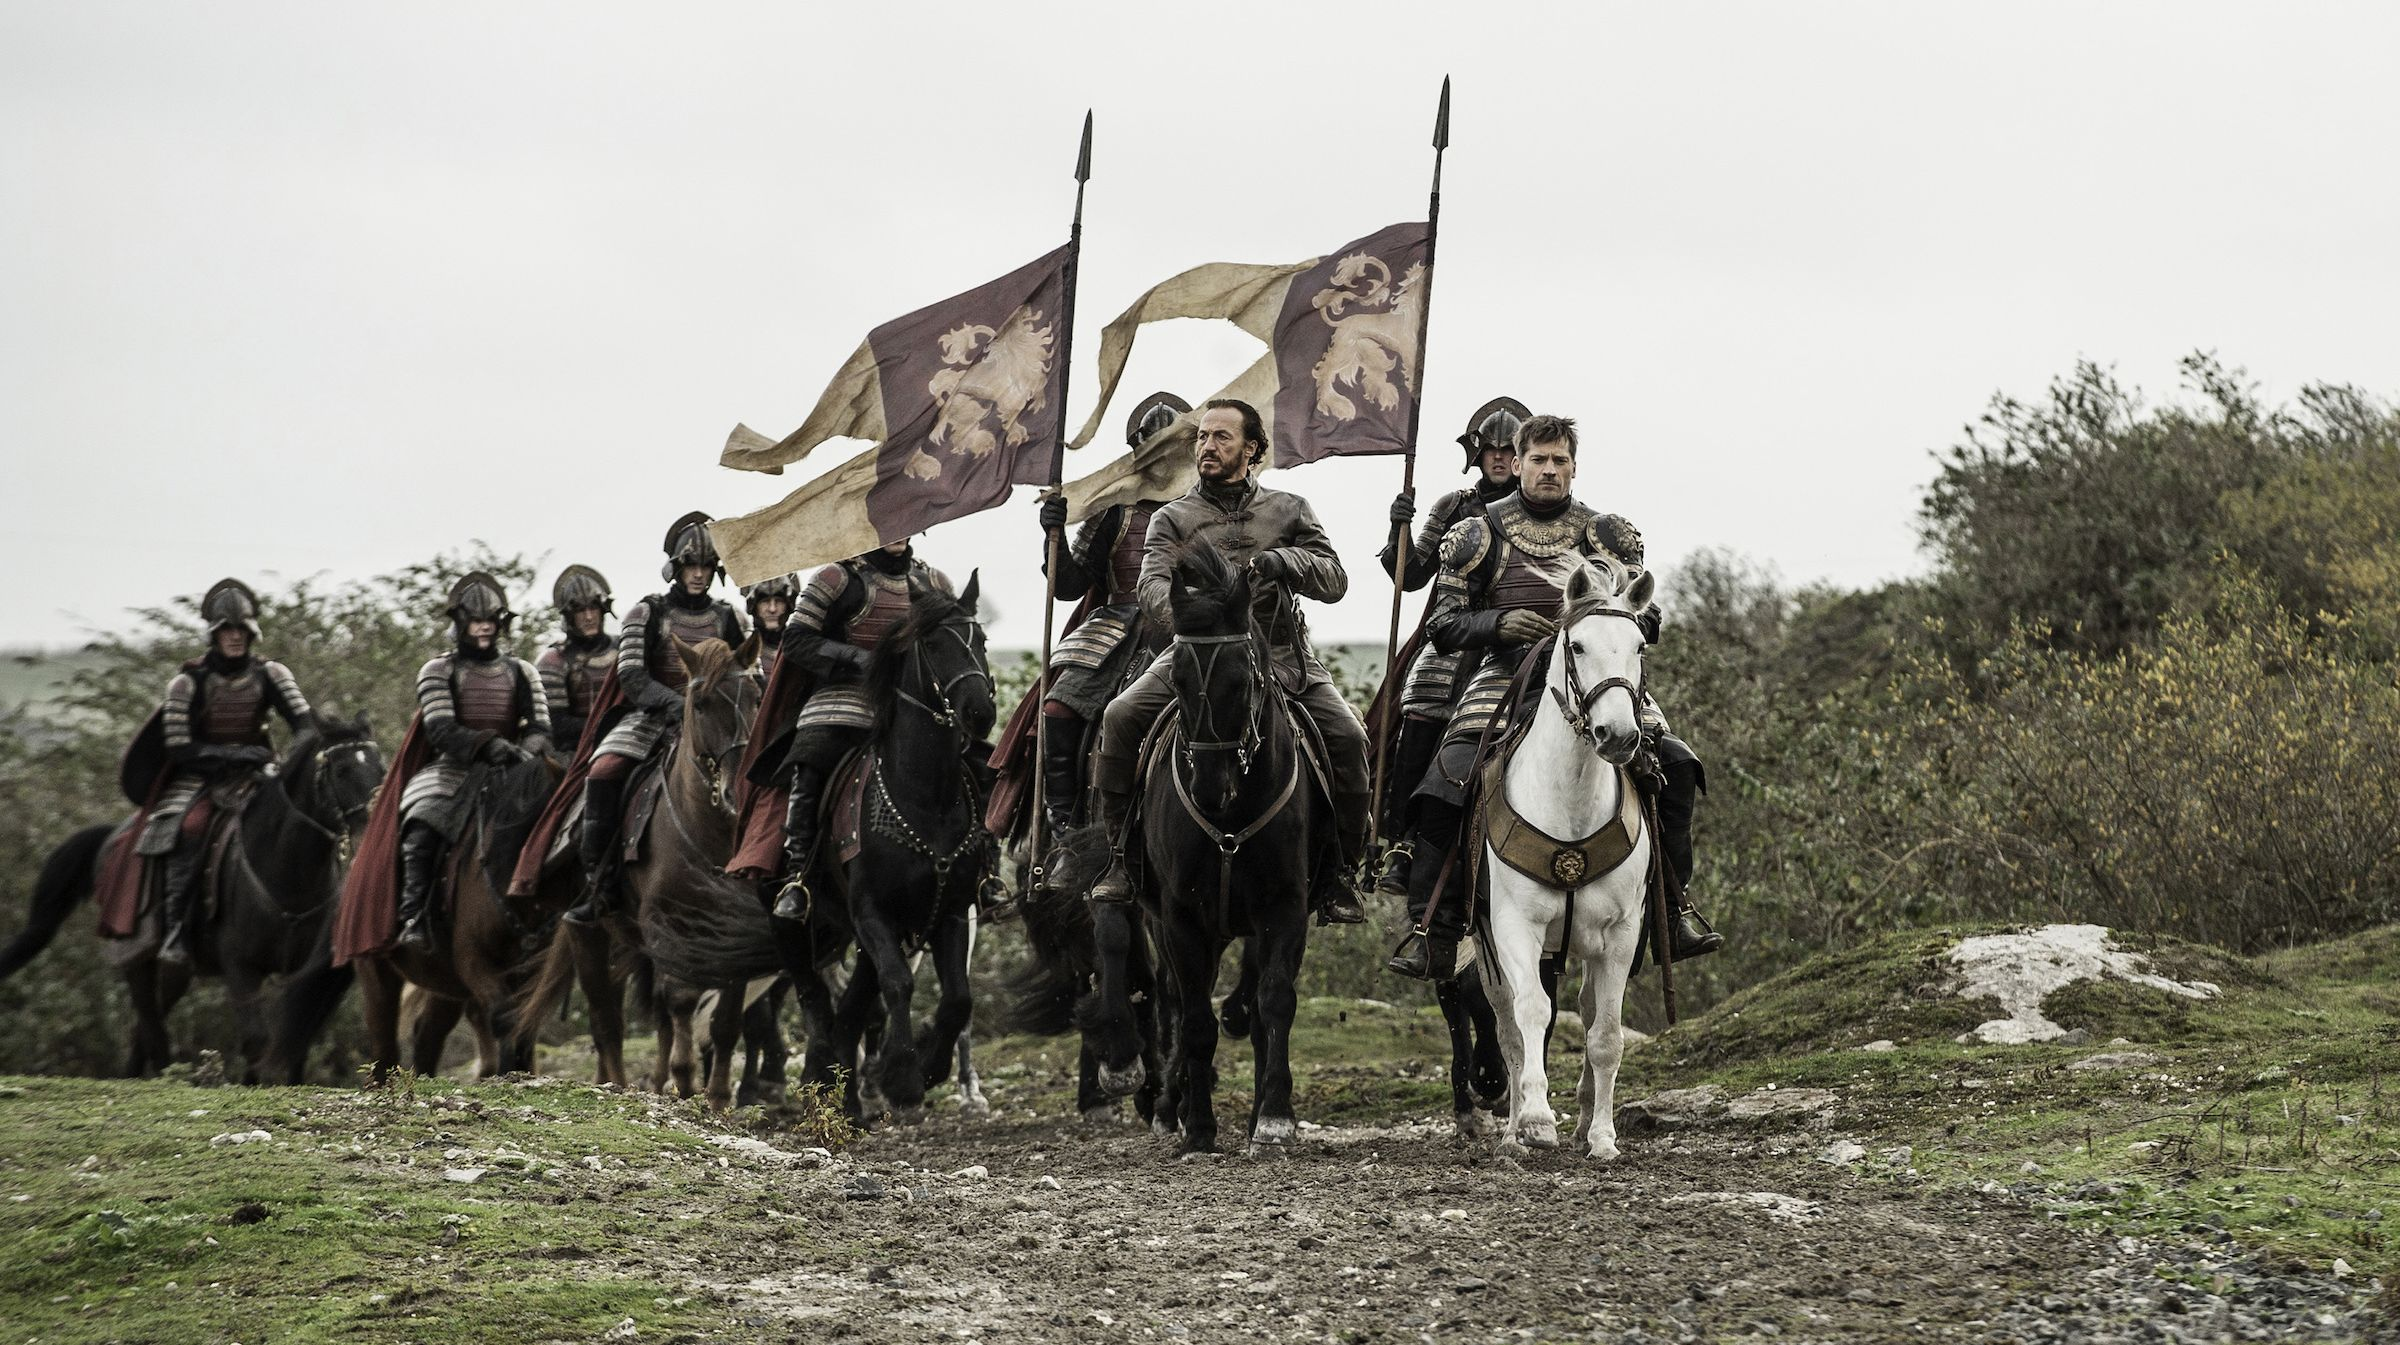 10 Variations on the Game of Thrones Theme Song | Mental Floss